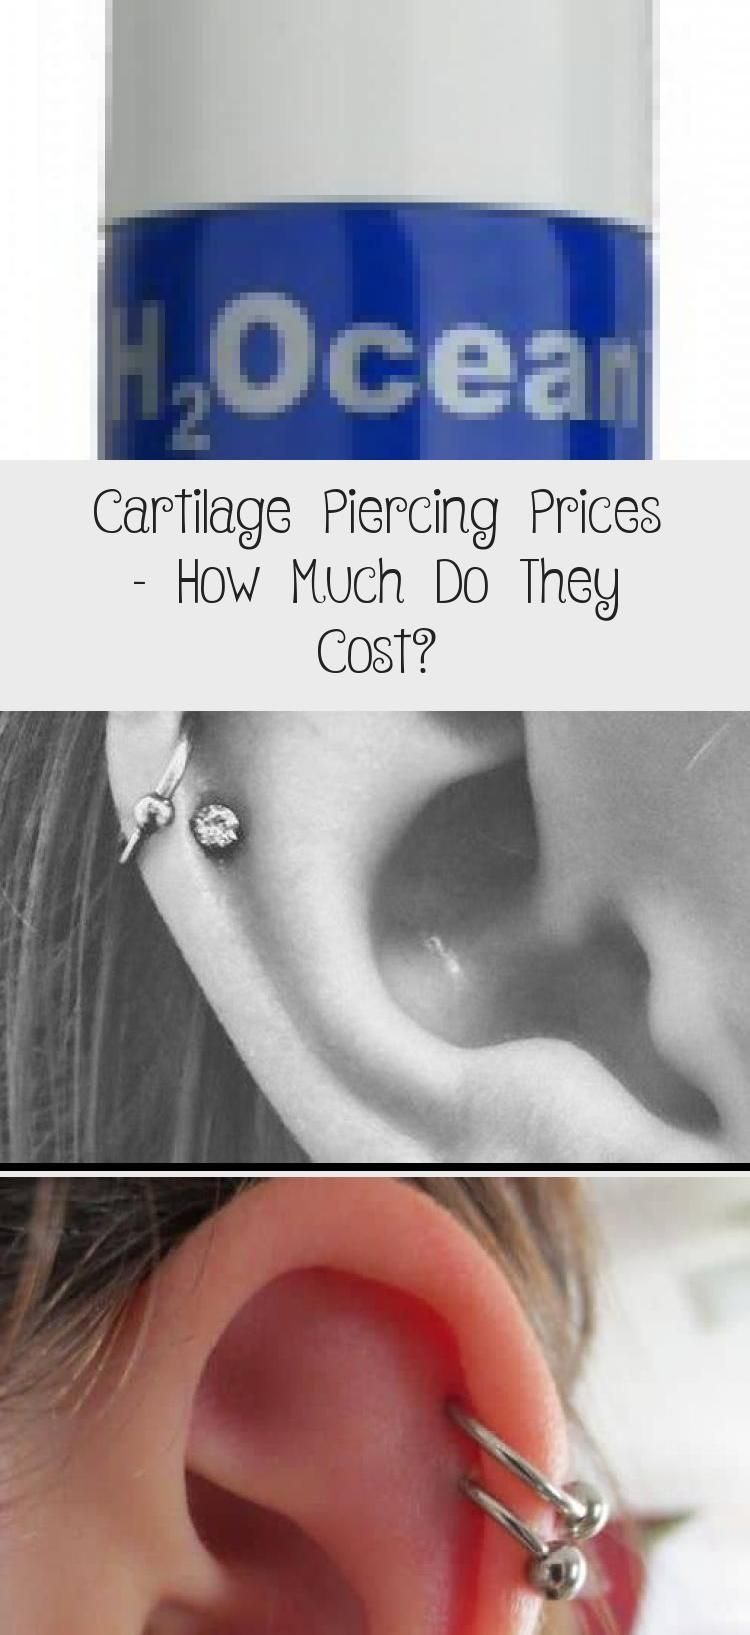 Cartilage Piercing Prices How Much Do They Cost Piercings Cartilage Cartilagepiercings Co In 2020 With Images Cartilage Piercing Care Double Cartilage Piercing Piercings